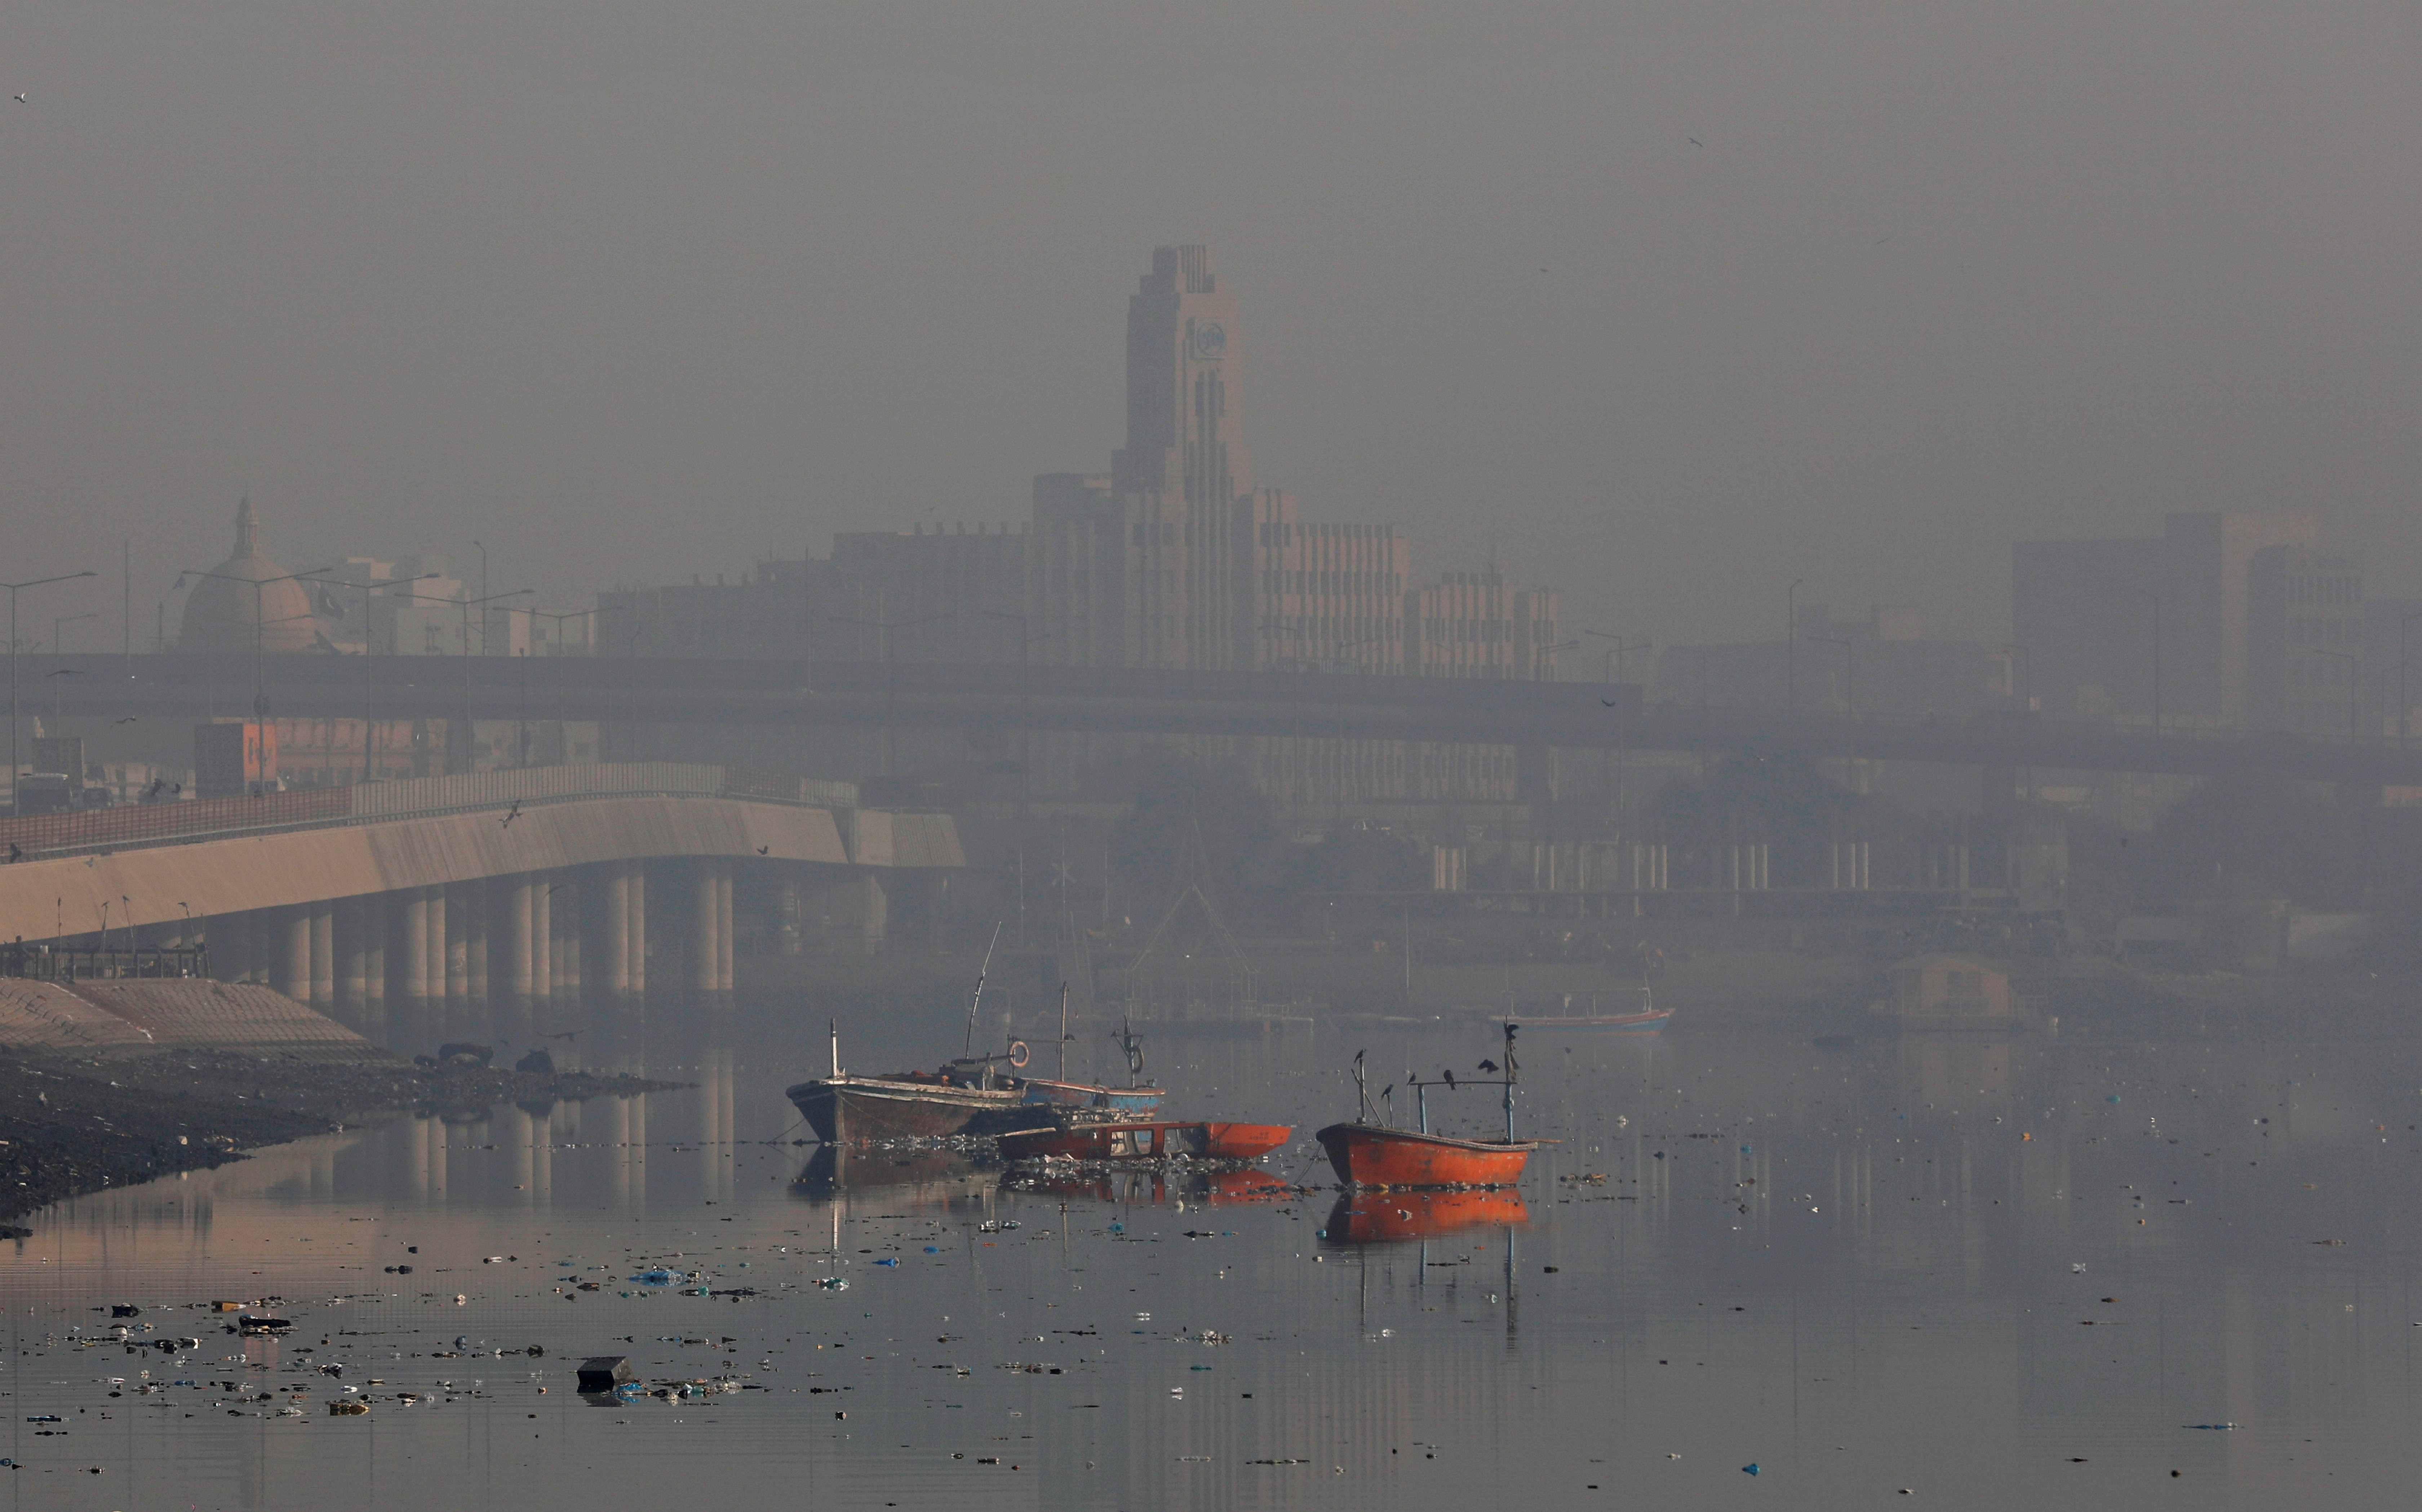 A general view of boats amid dense fog and mist in the background during morning hours at China Creek area in Karachi, Pakistan January 17, 2020. REUTERS/Akhtar Soomro - RC2JHE9XUAJG